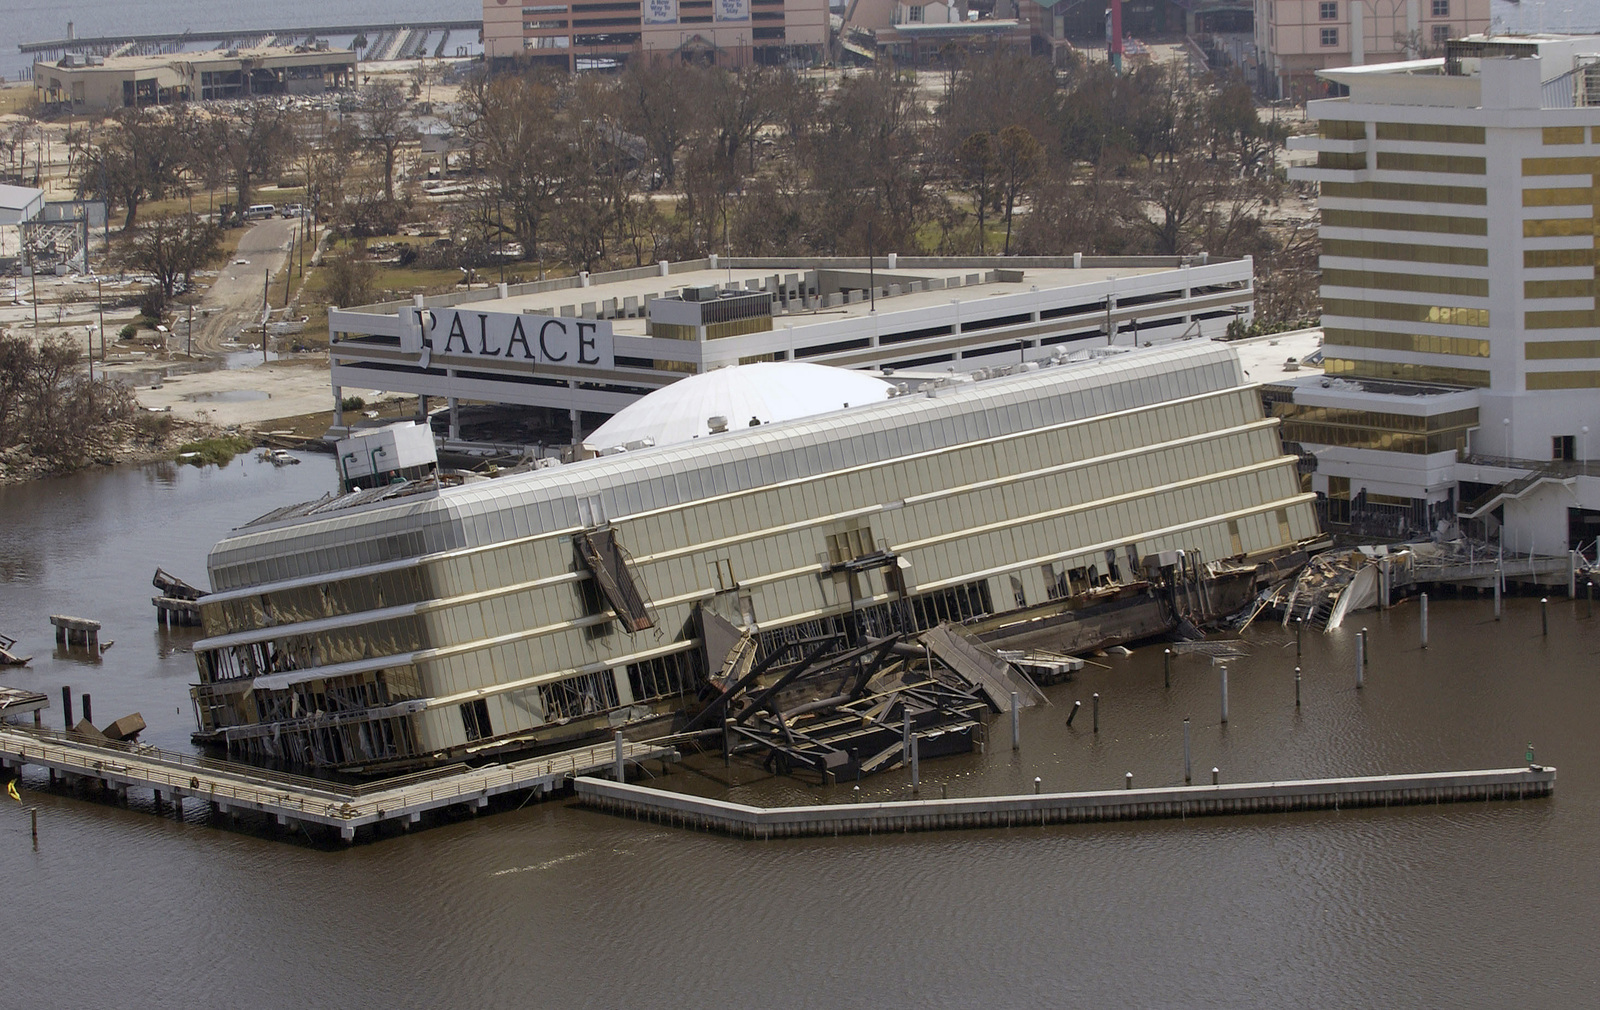 A View Showing The Damage To The Riverboat Casino Valance In